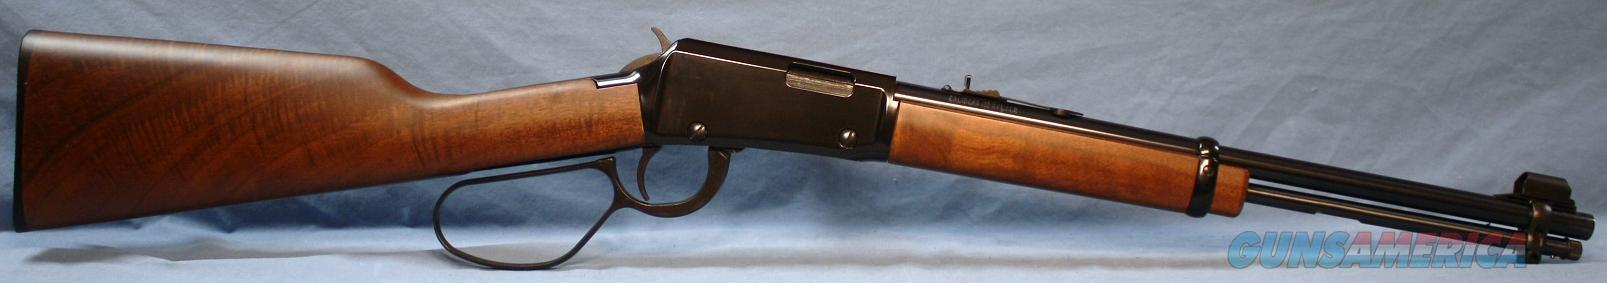 Henry Rifle Co. Large Loop Lever Action Carbine .22 Short, Long & Long Rifle   Guns > Rifles > Henry Rifle Company